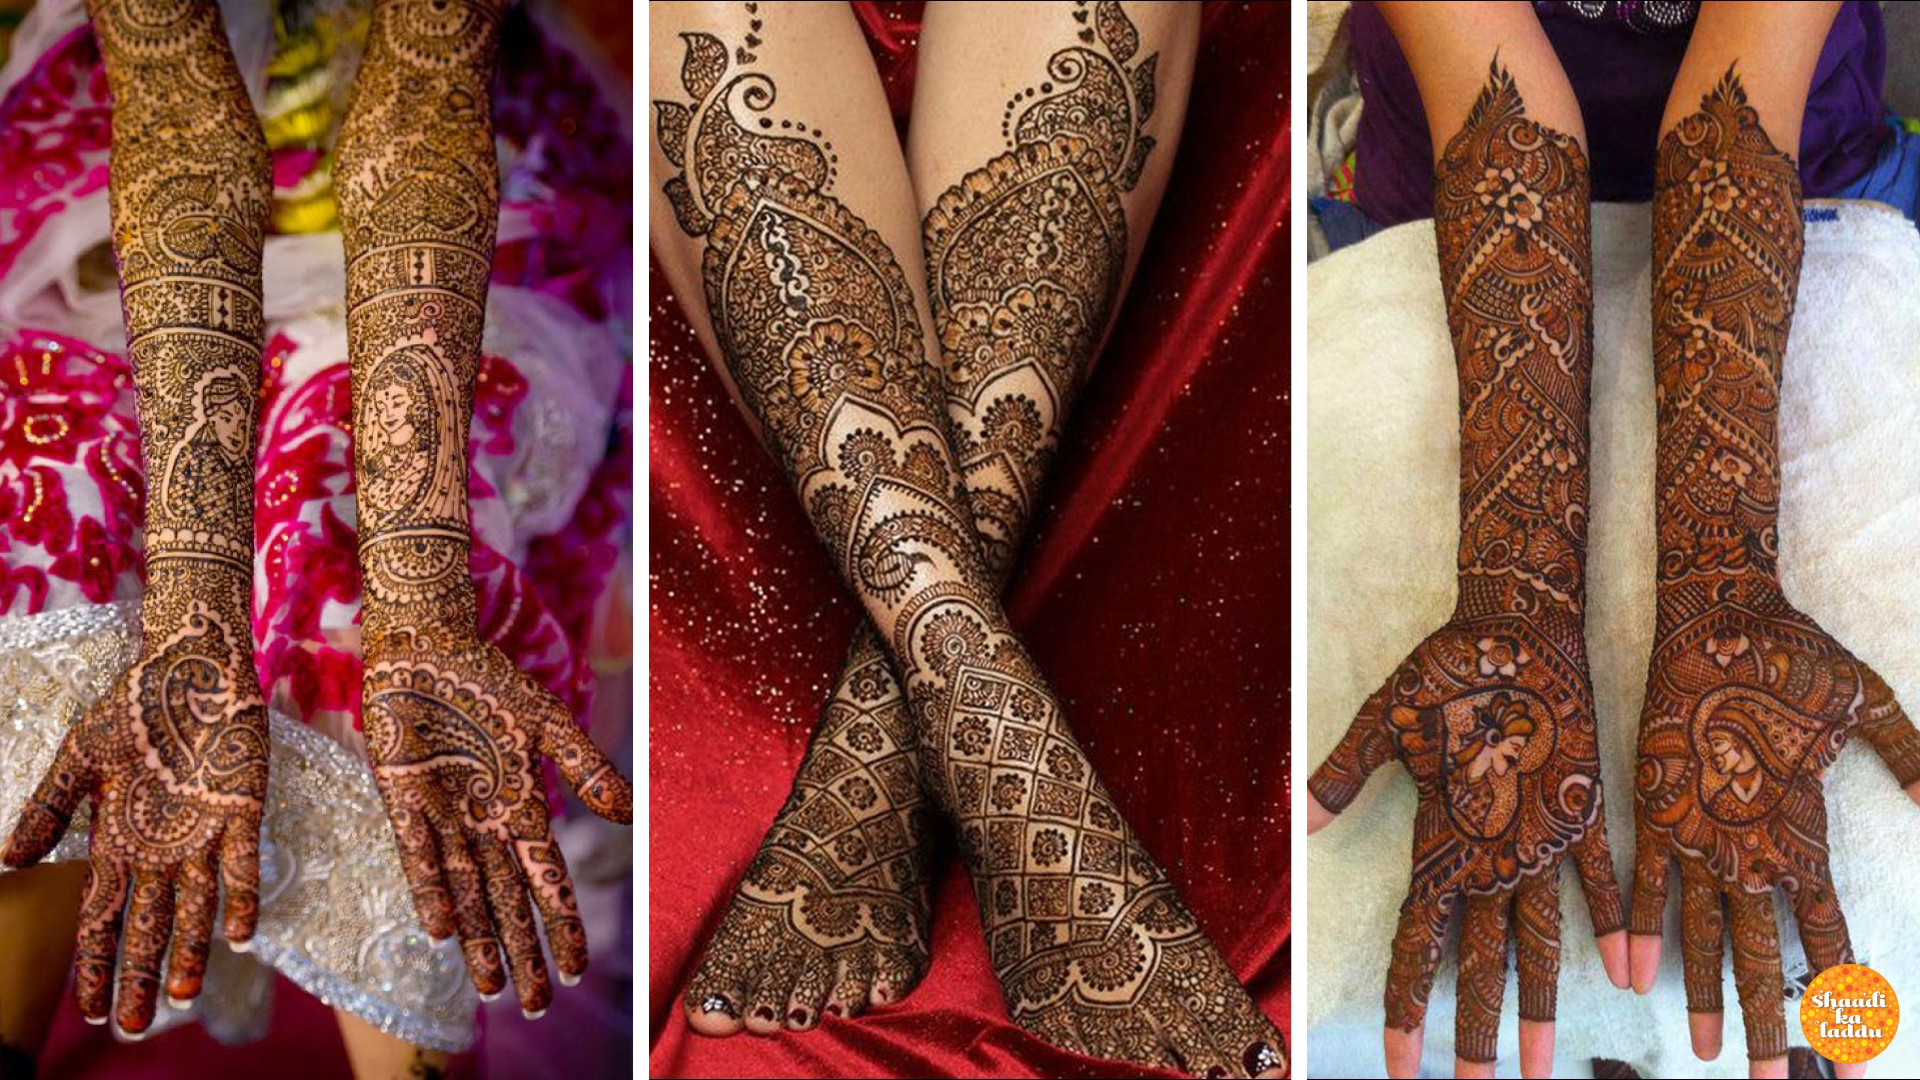 Neat and Detailed Mughlai Mehendi designs